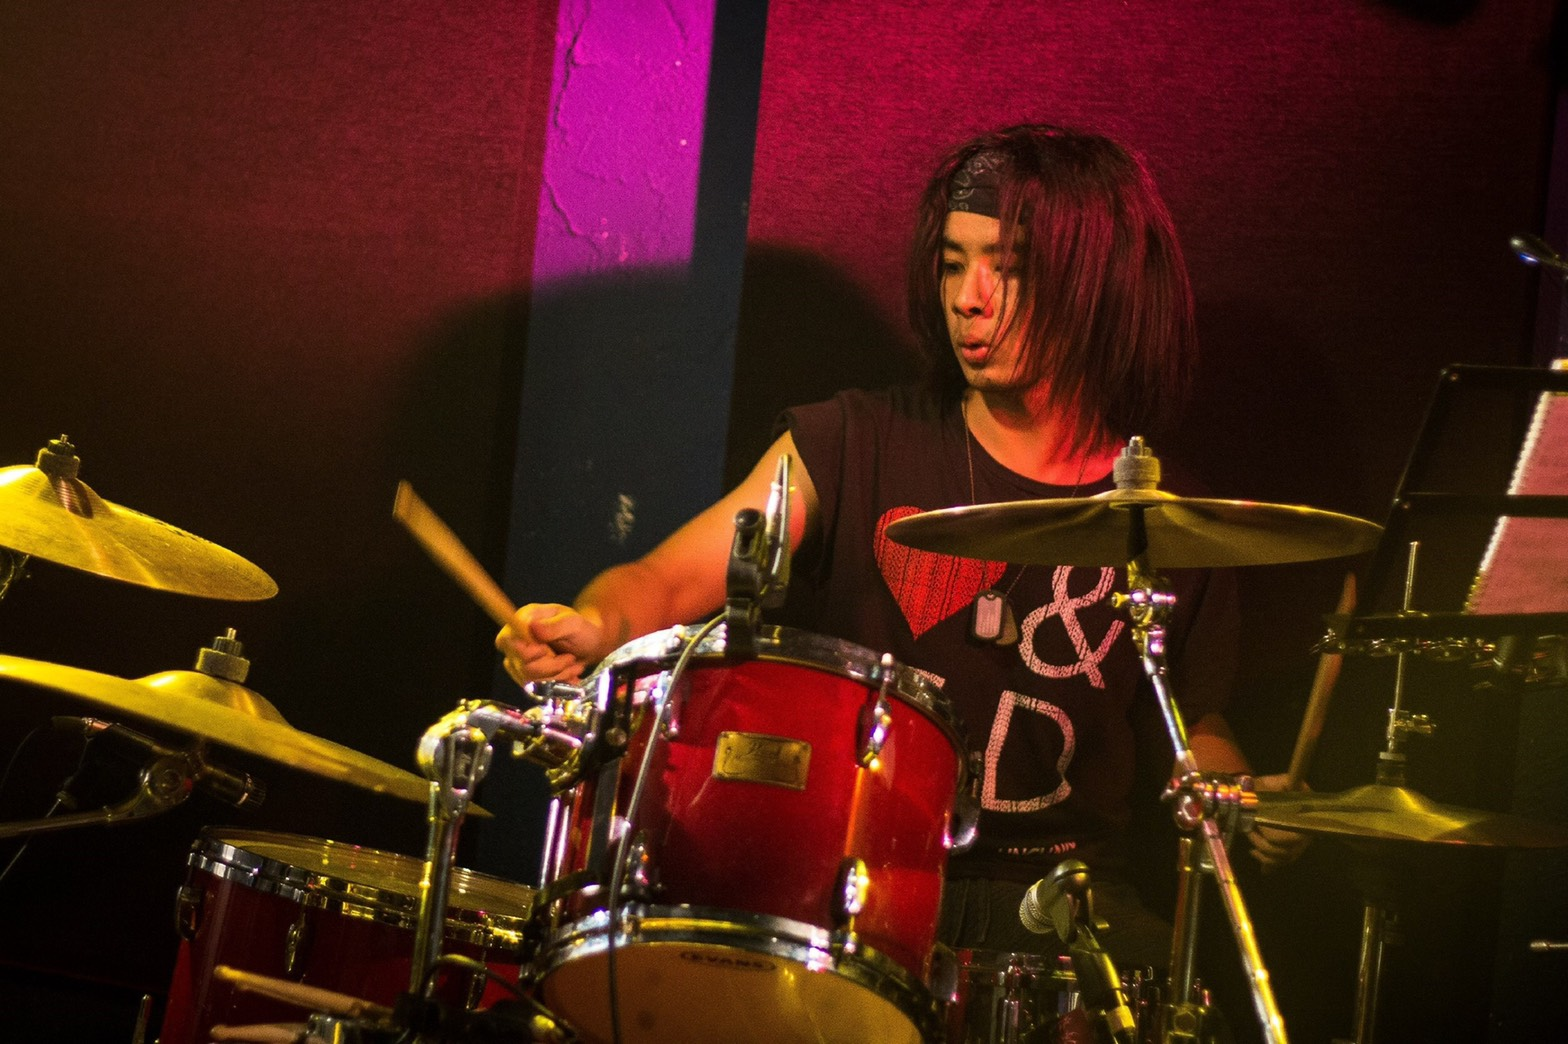 Tips for Drummer  ドラム教室〜基礎から応用まで〜